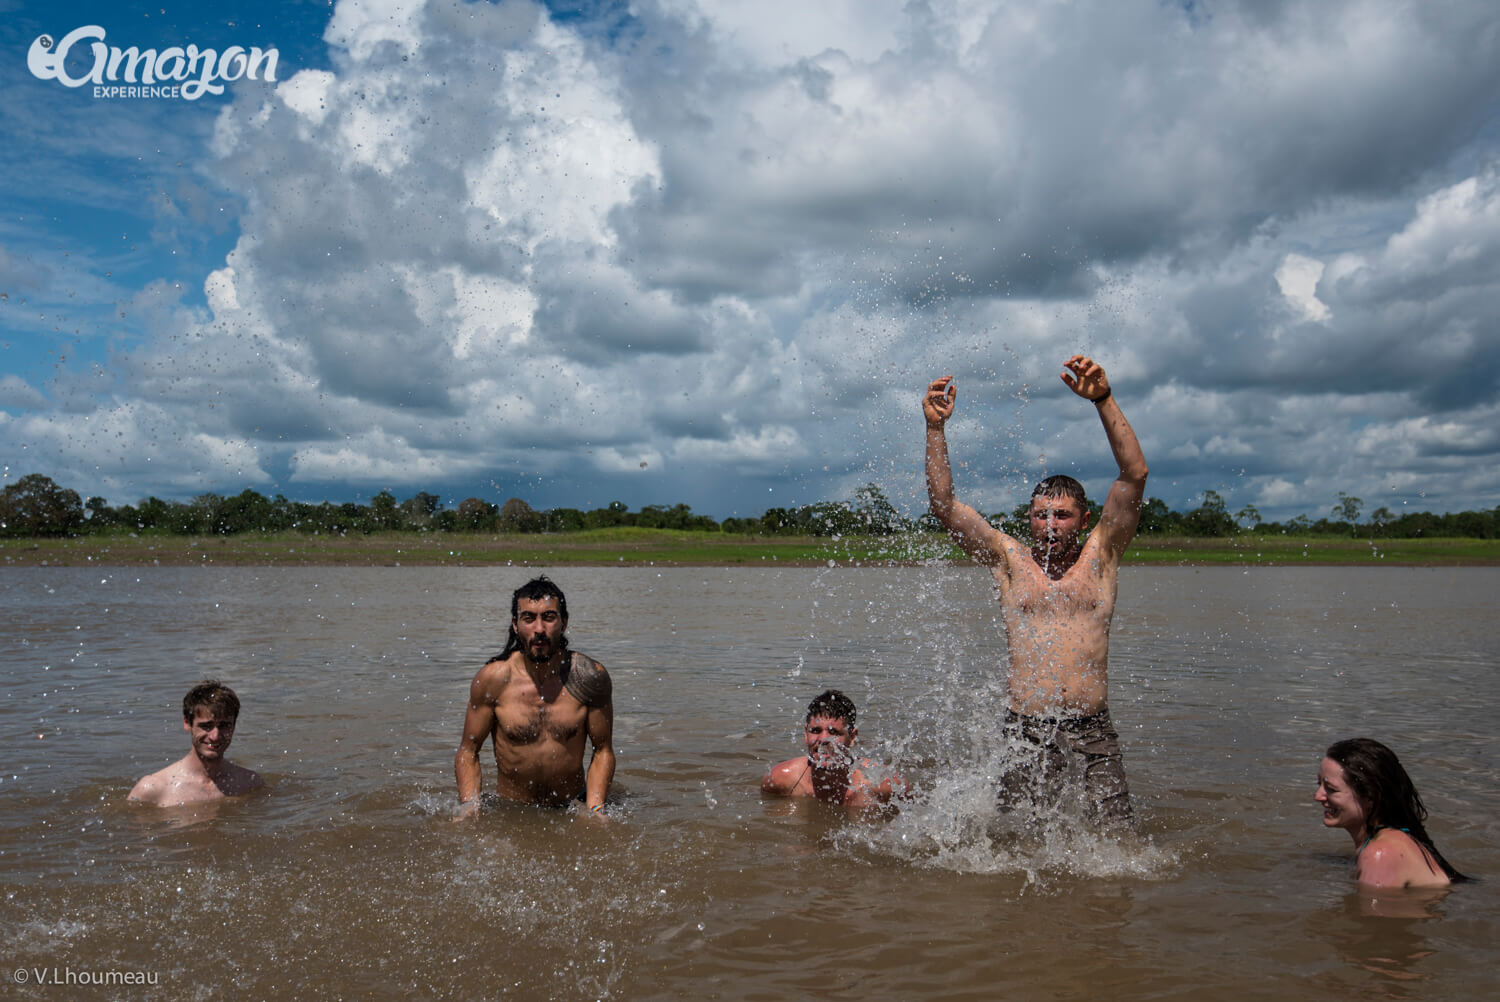 People jumping in the Amazon river